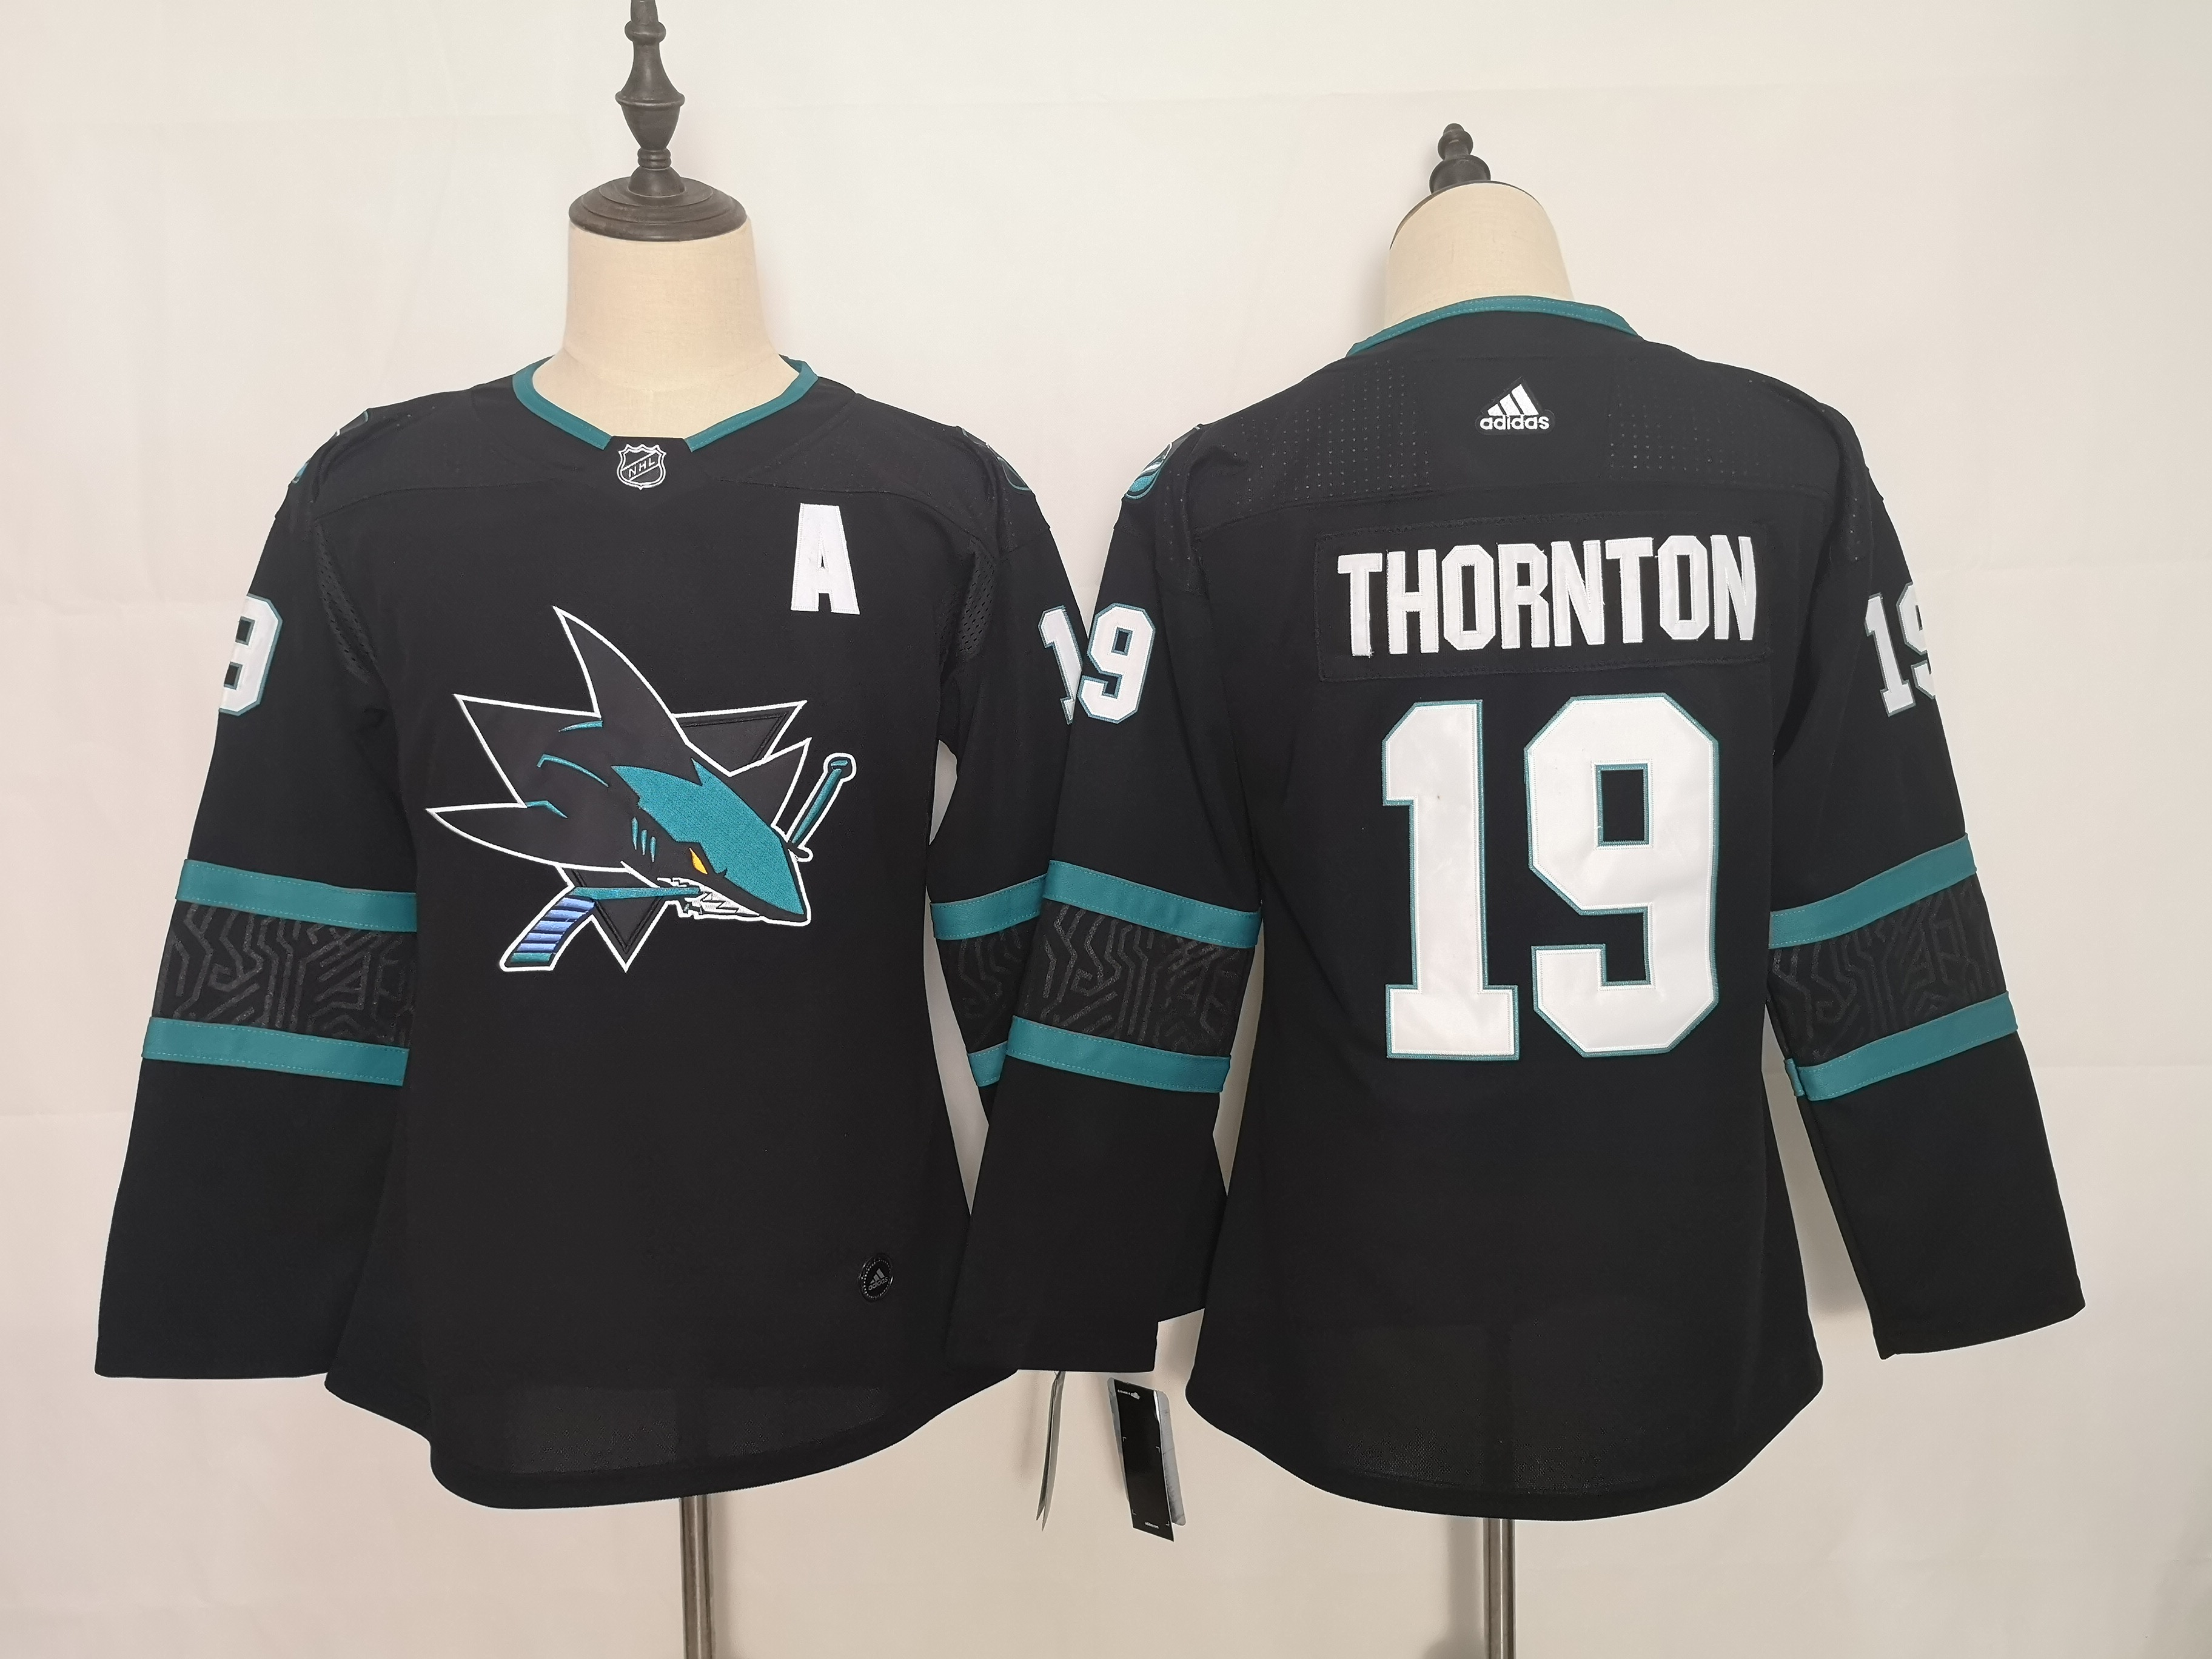 Sharks 19 Joe Thornton Black Youth Adidas Jersey